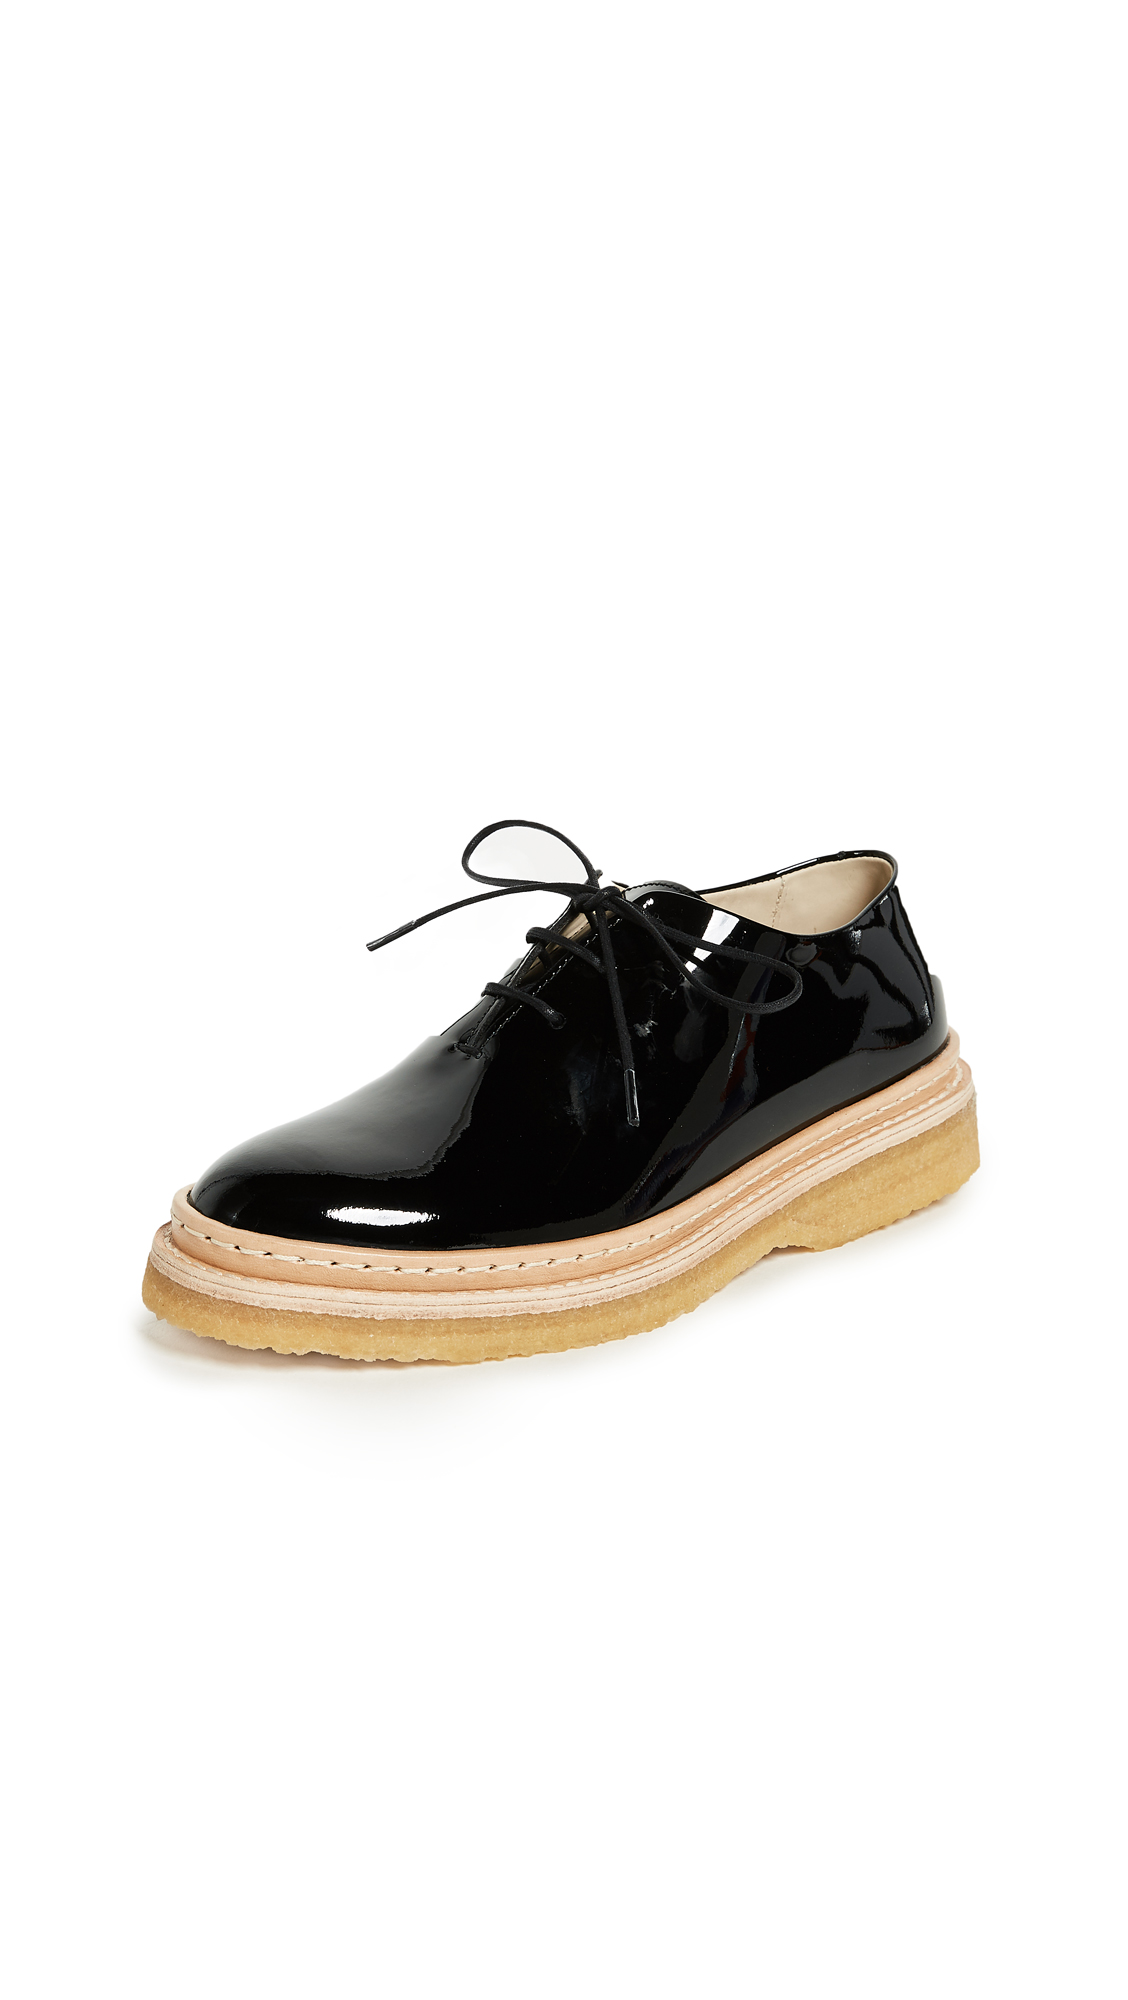 WANT LES ESSENTIELS Cordova Crepe Oxfords - Black